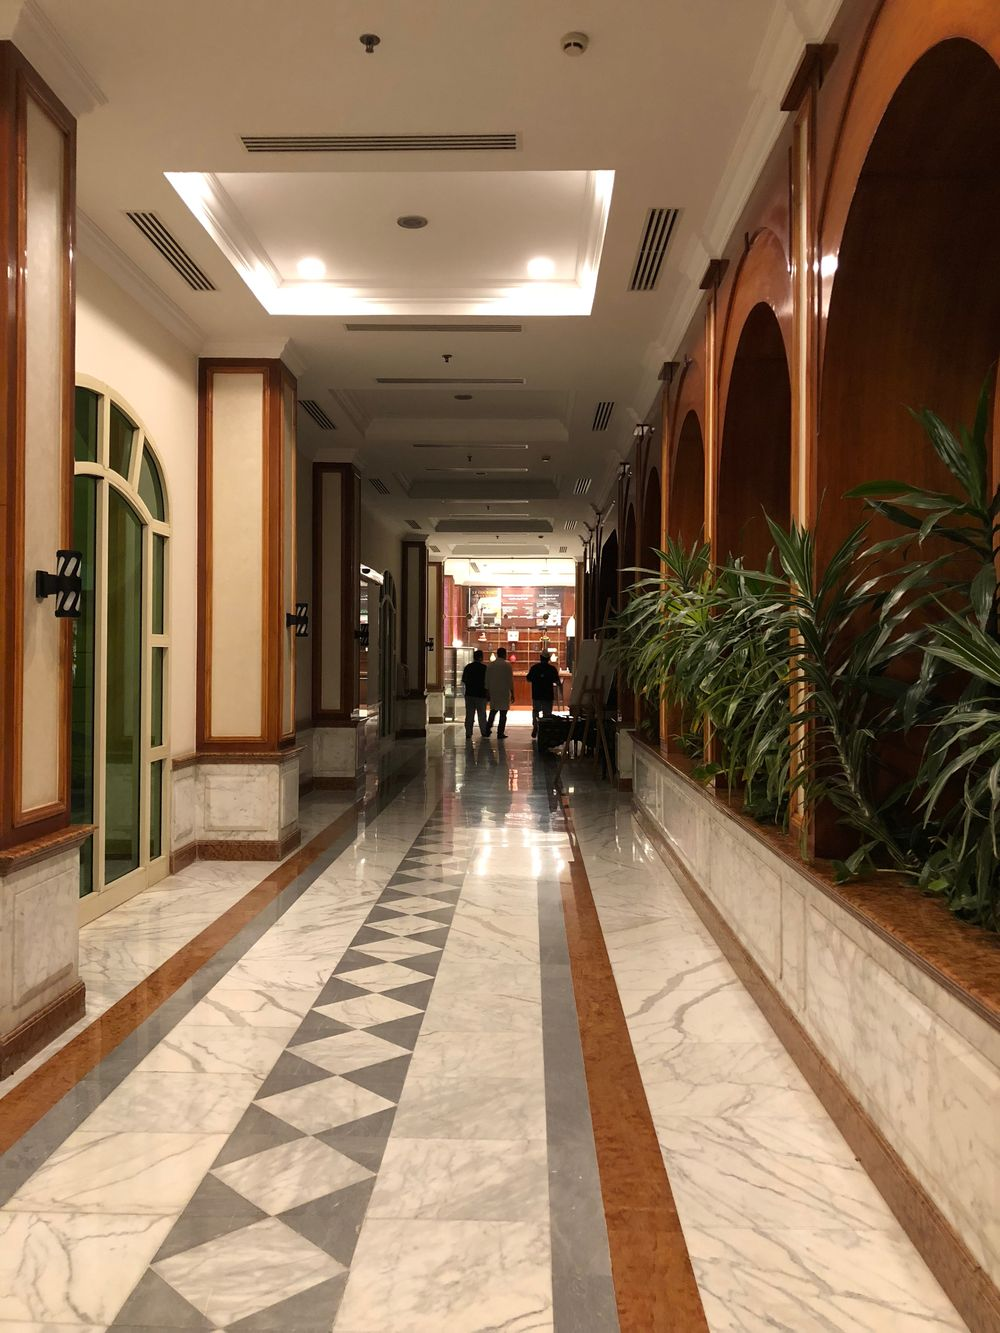 bad-movenpick-hotel-egypt-582018-03-08-05-26-30